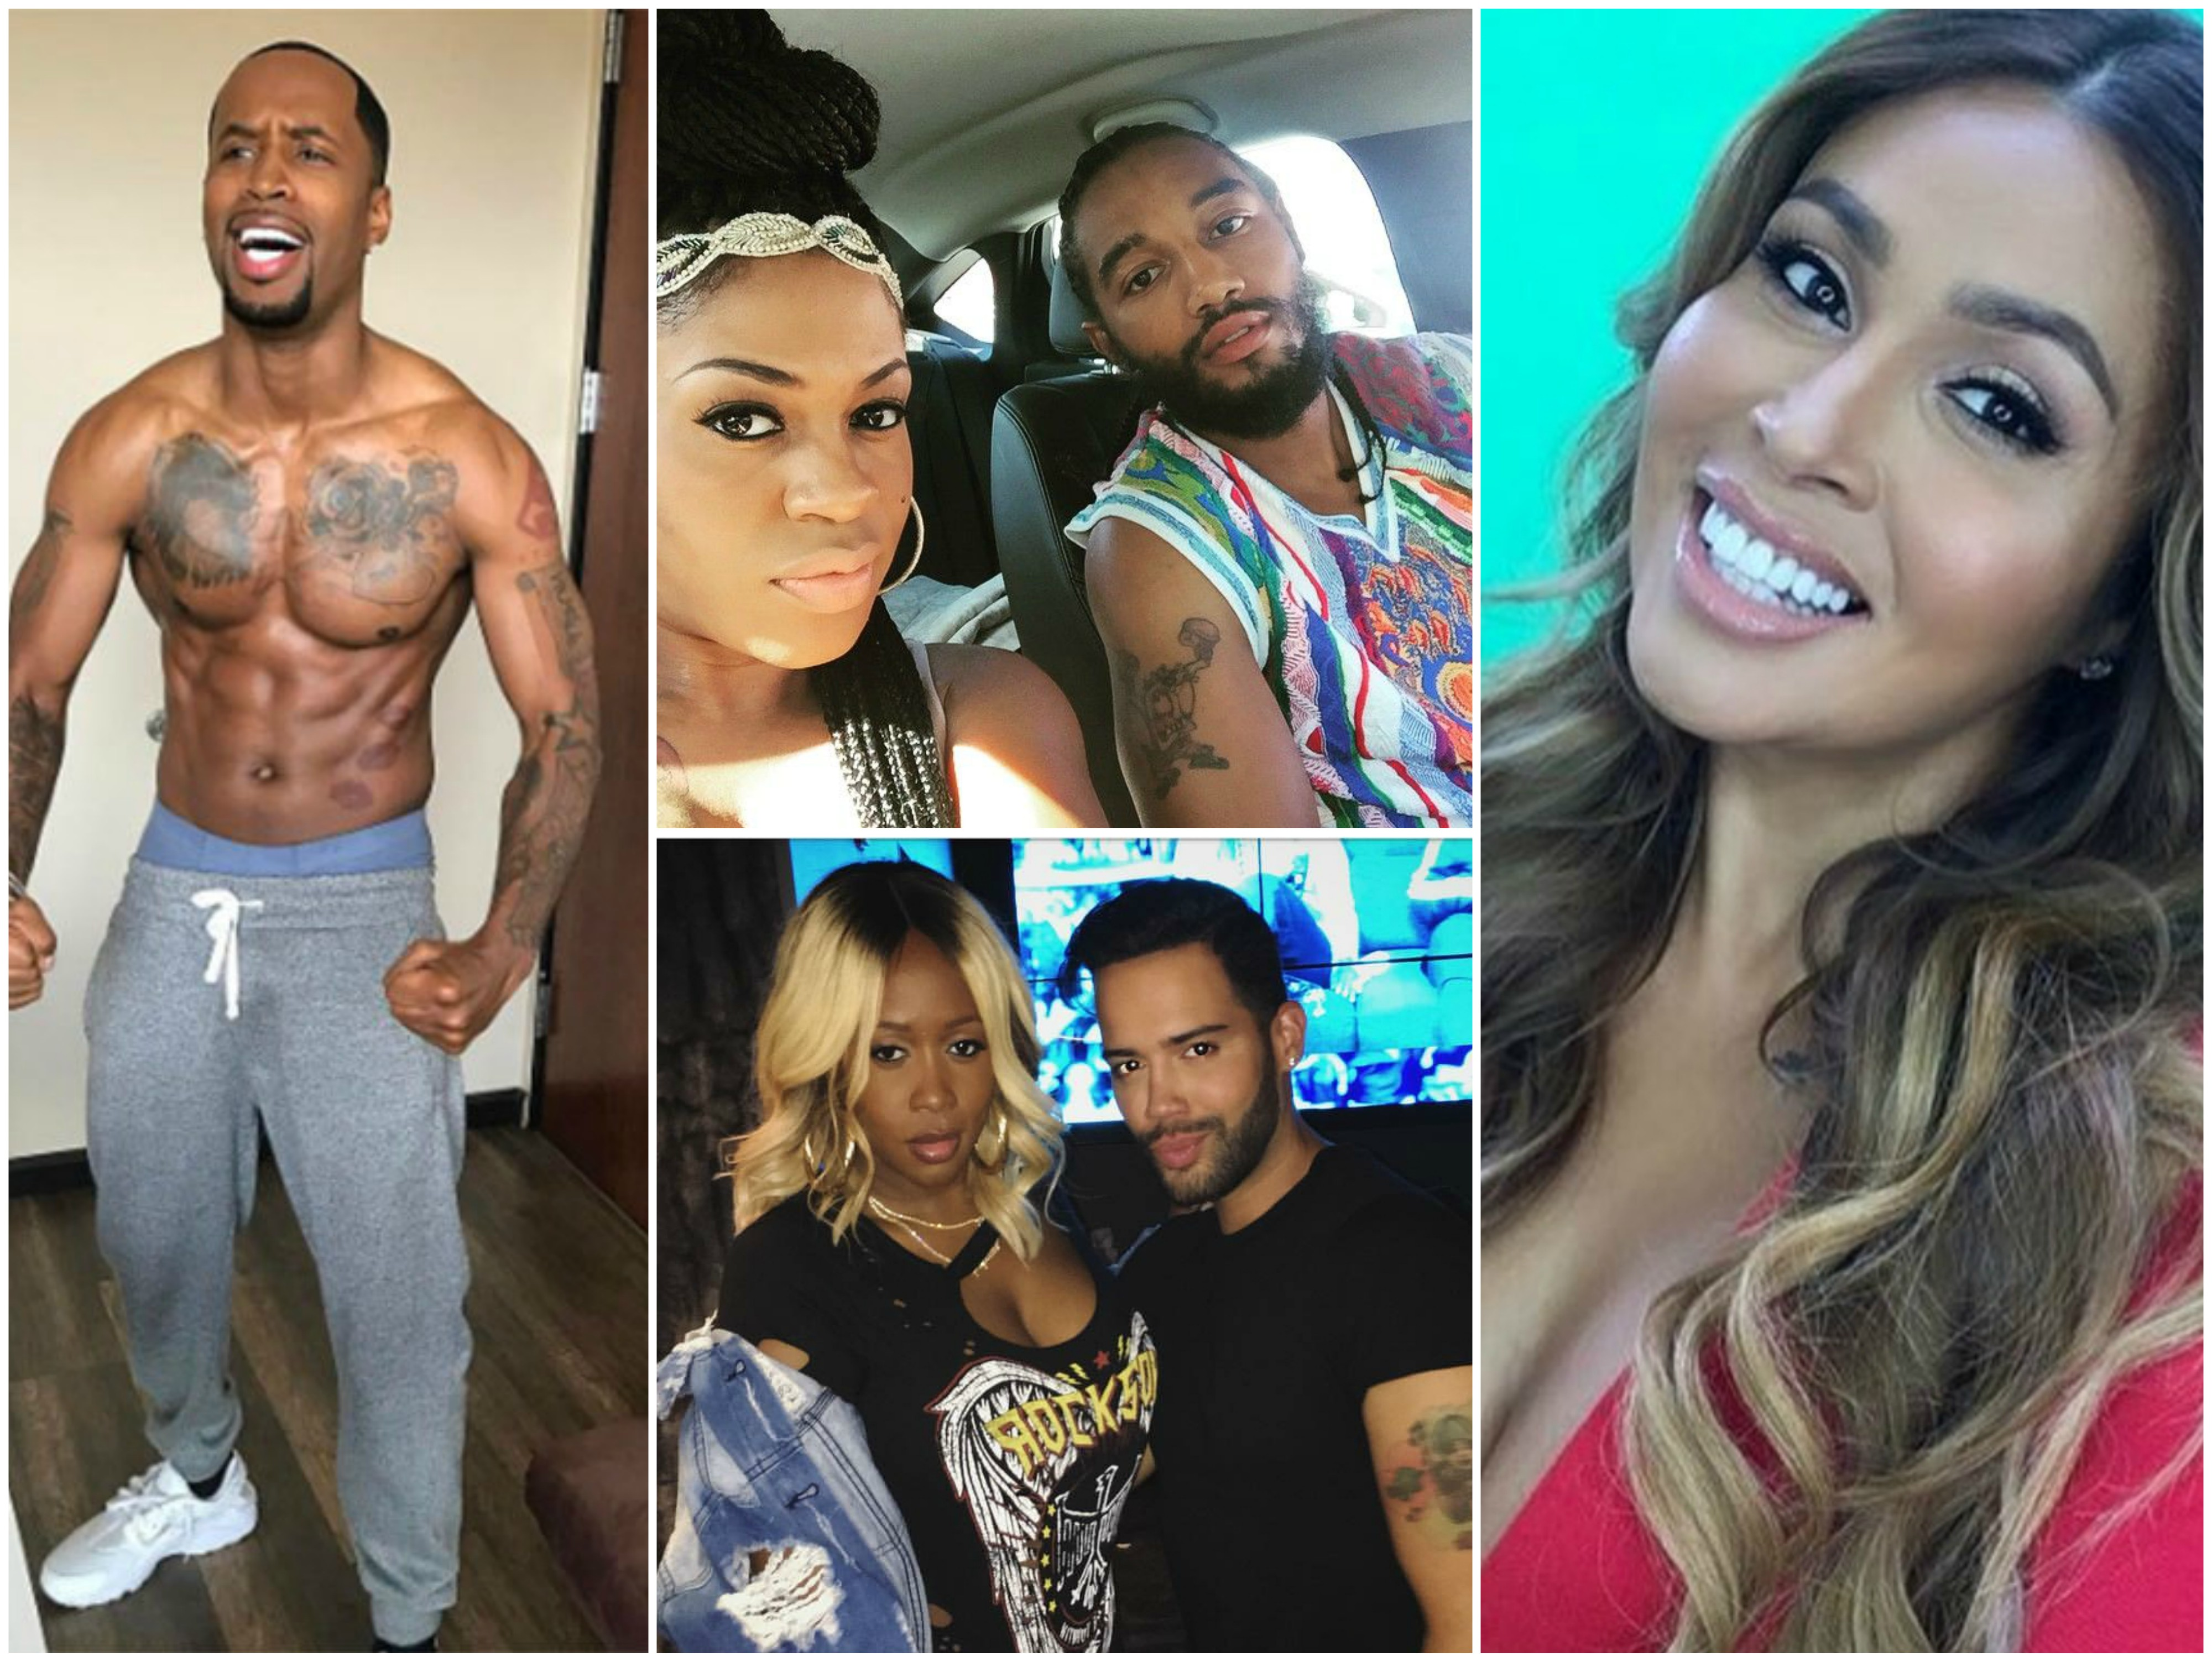 Love & Hip Hop' Welcomes First Gay Couple Trent Crews